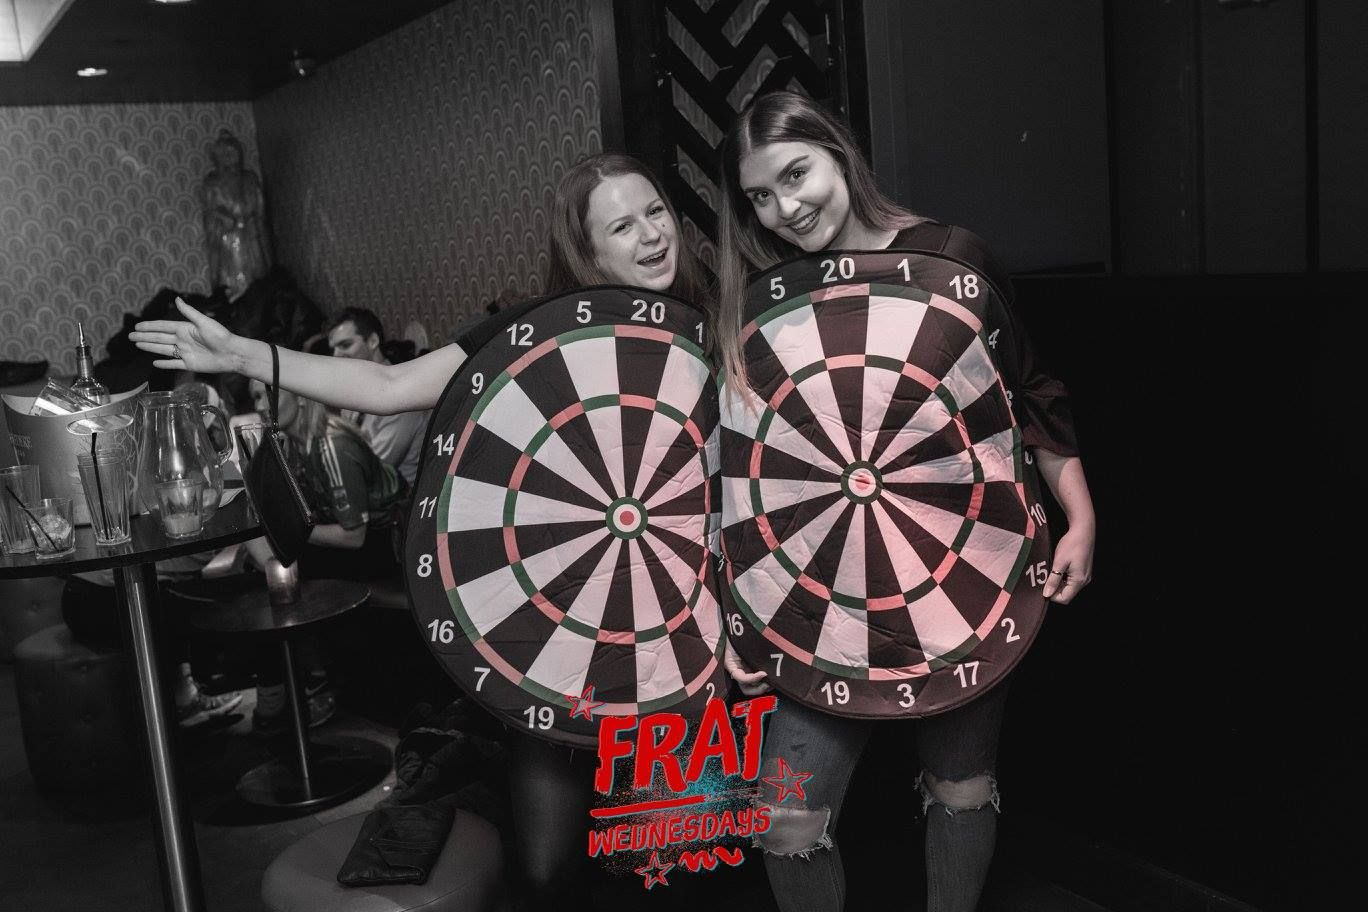 Image may contain: Game, Darts, Person, People, Human